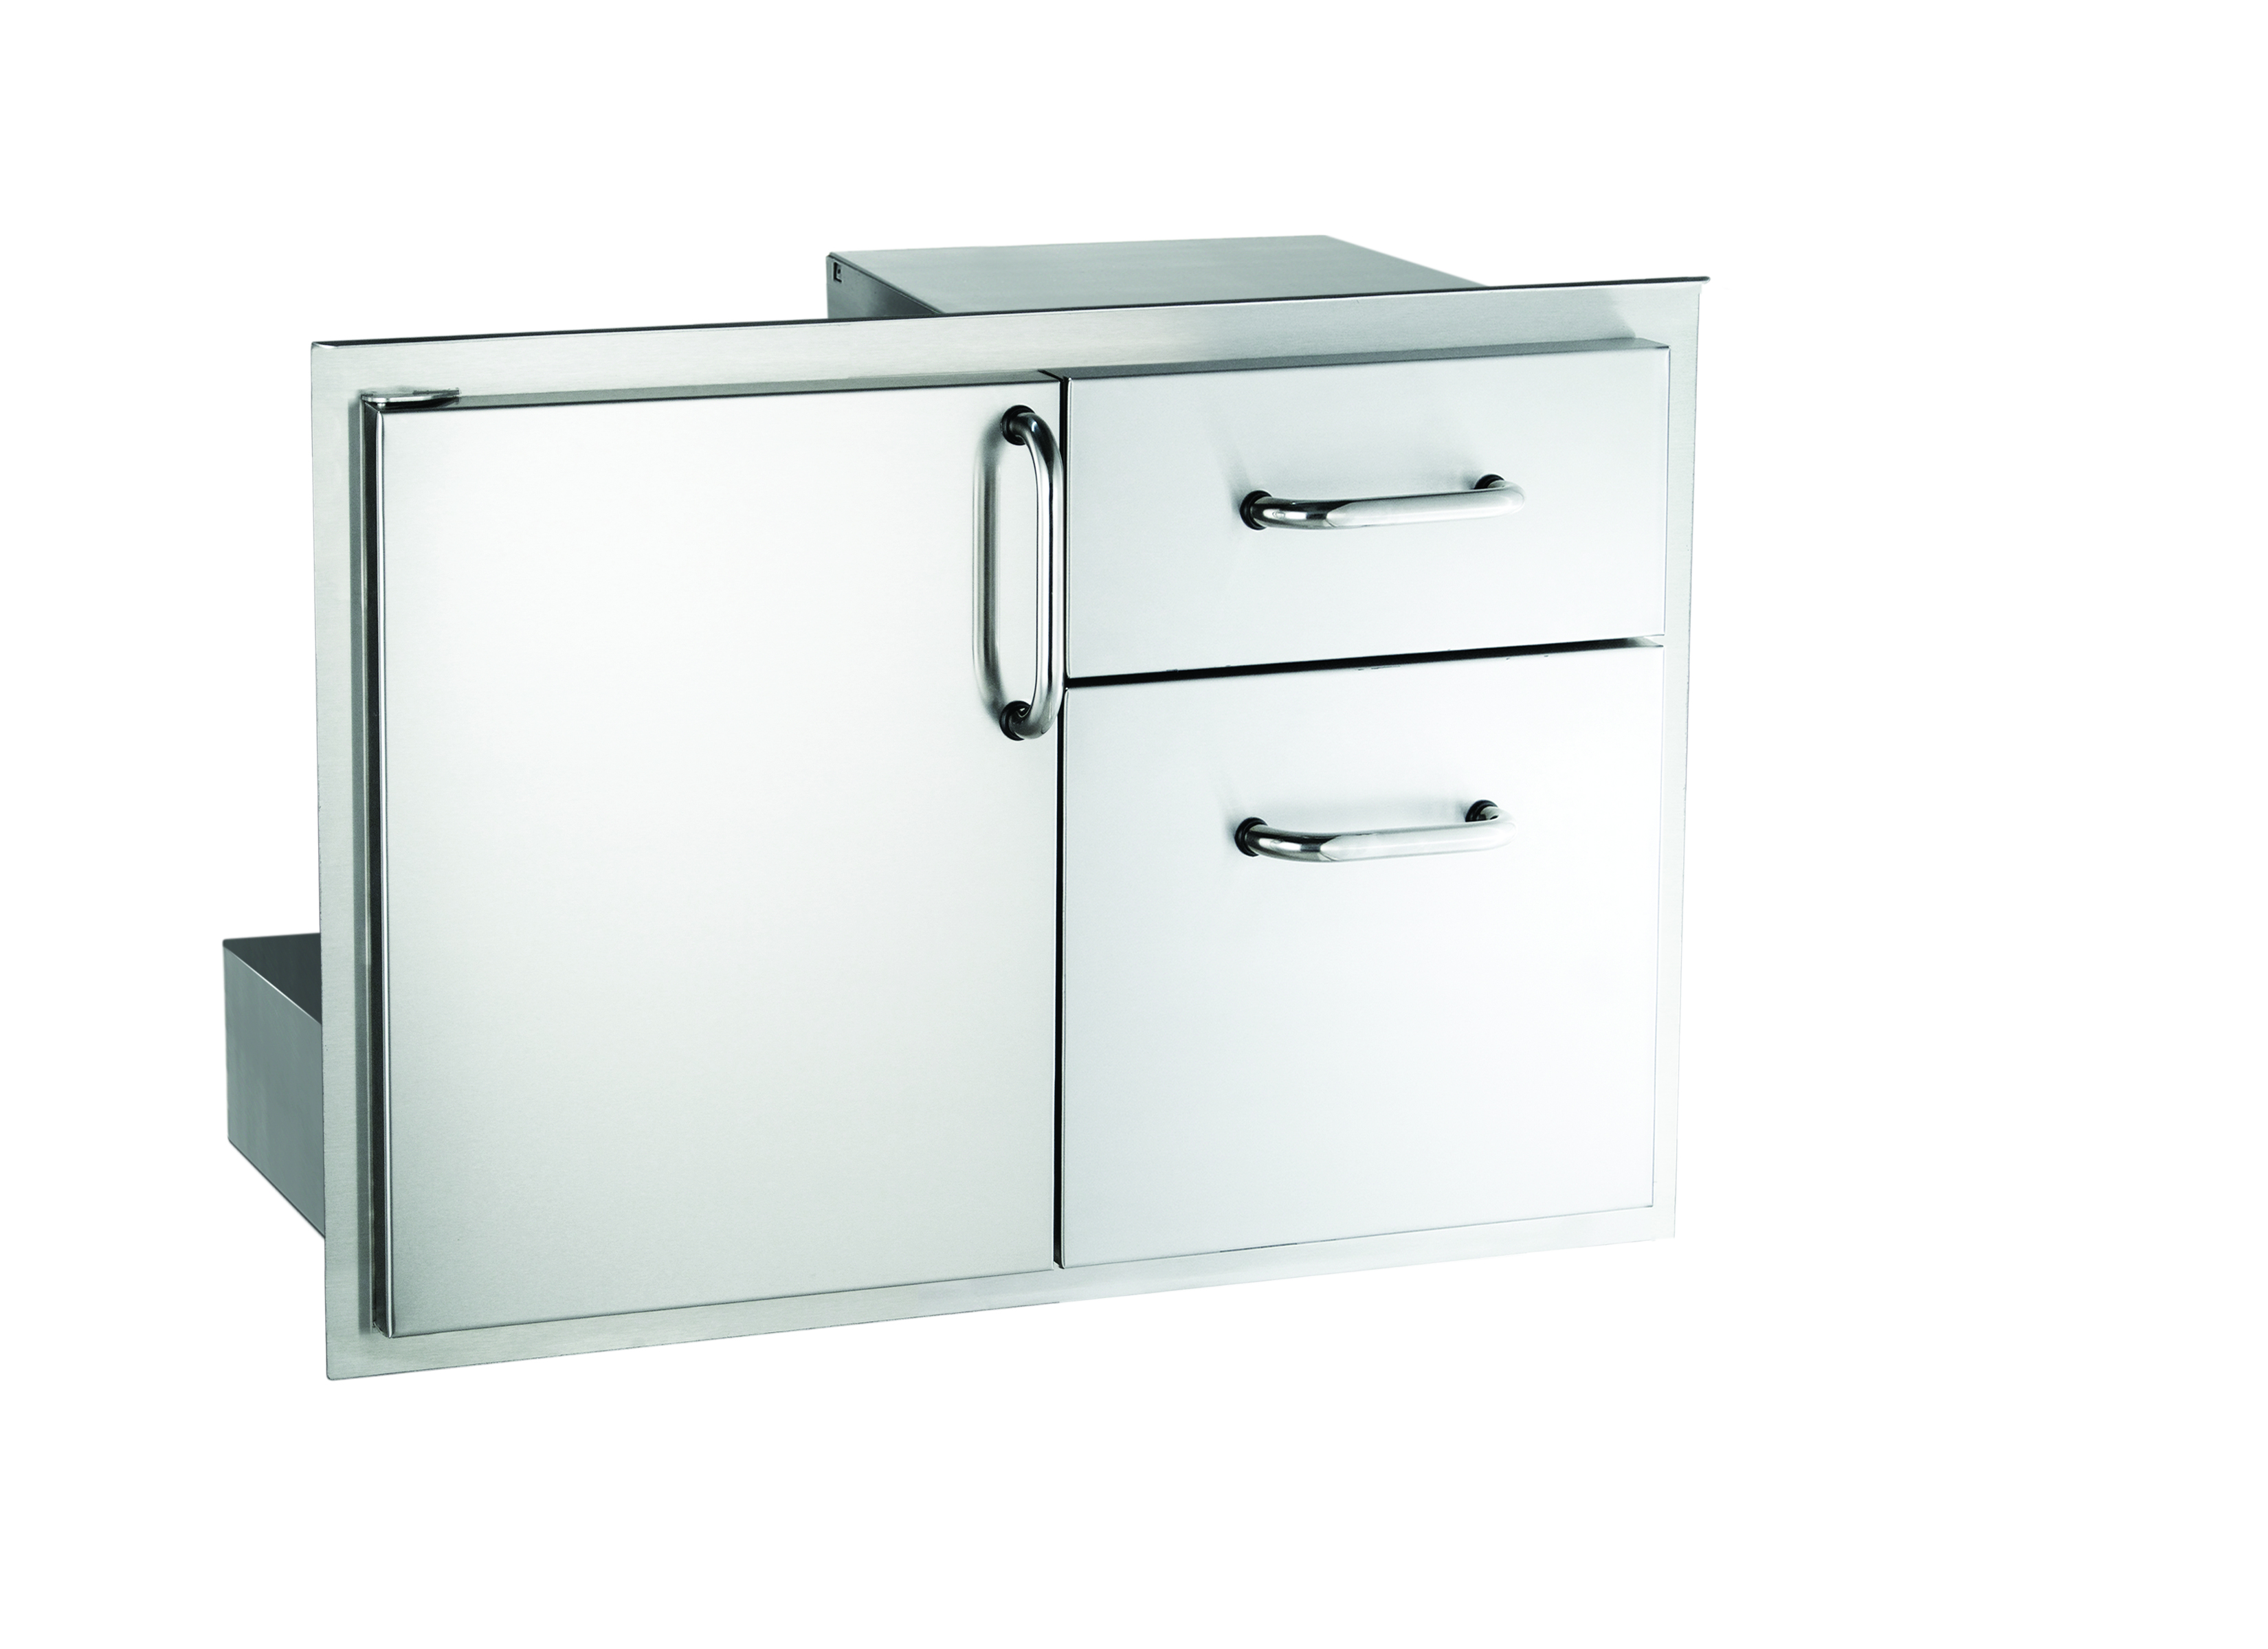 aog-18-30-ssdd-18x30-storage-door-with-double-drawer.jpg